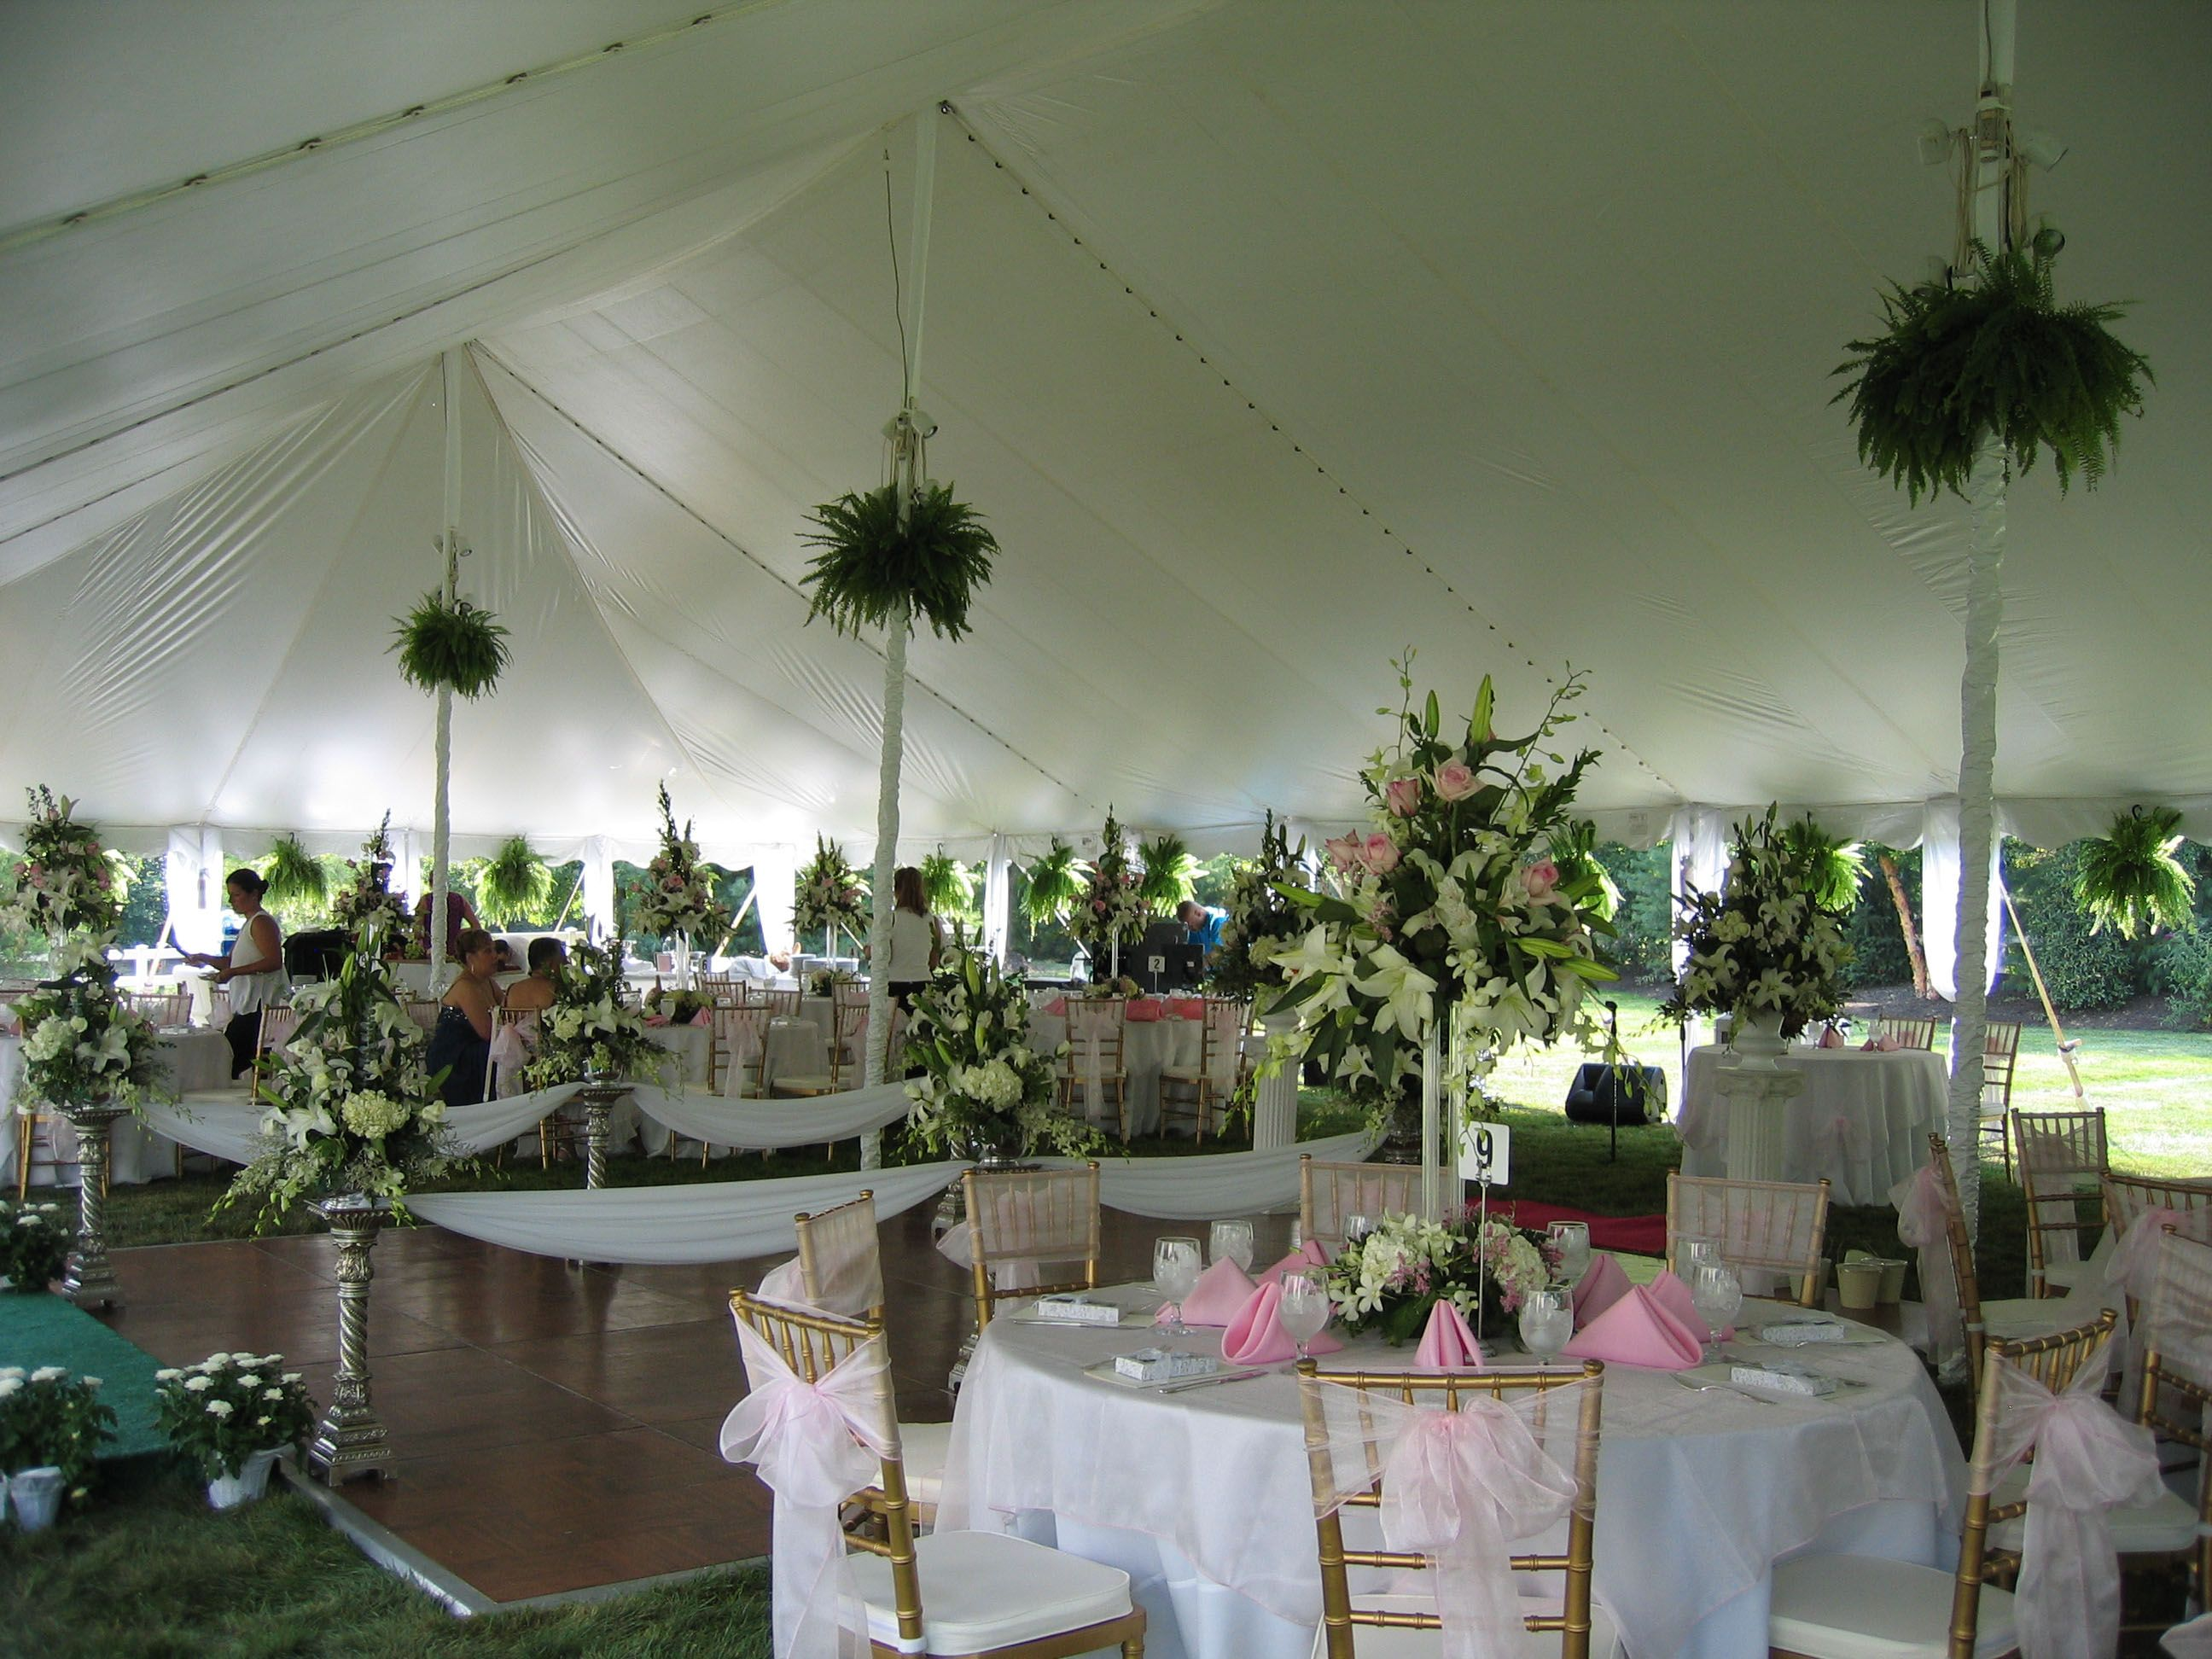 tent wedding receptions | Tent rental, wedding tent rental, party tent,  tents for rent in PA | Wedding tent, Tent wedding reception, Gazebo wedding